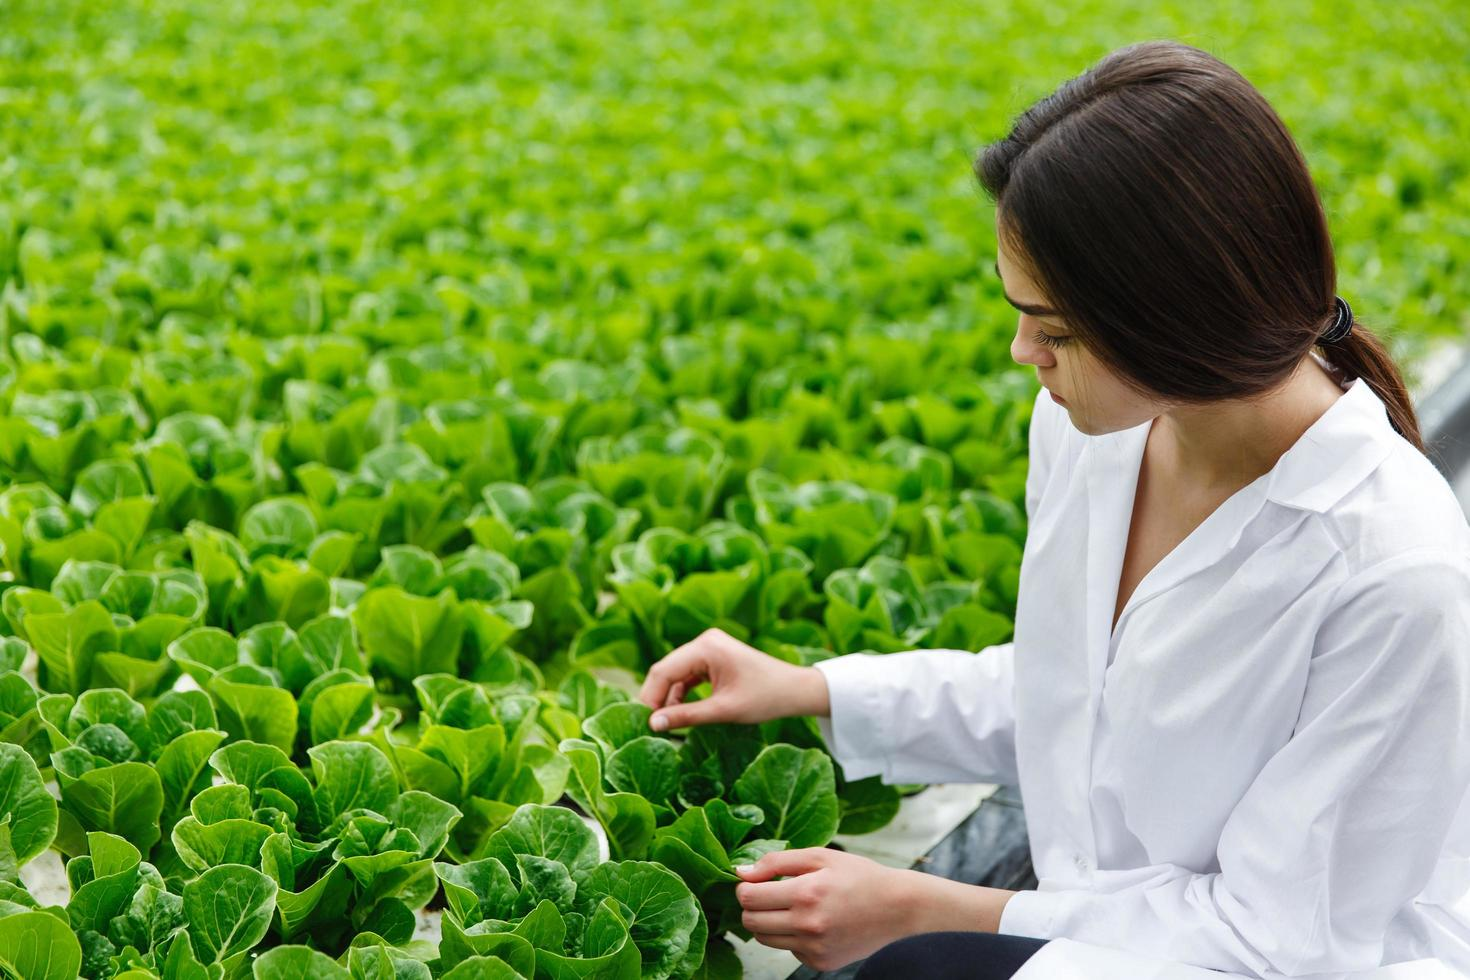 Woman in white laboratory robe examines salad and cabbage photo